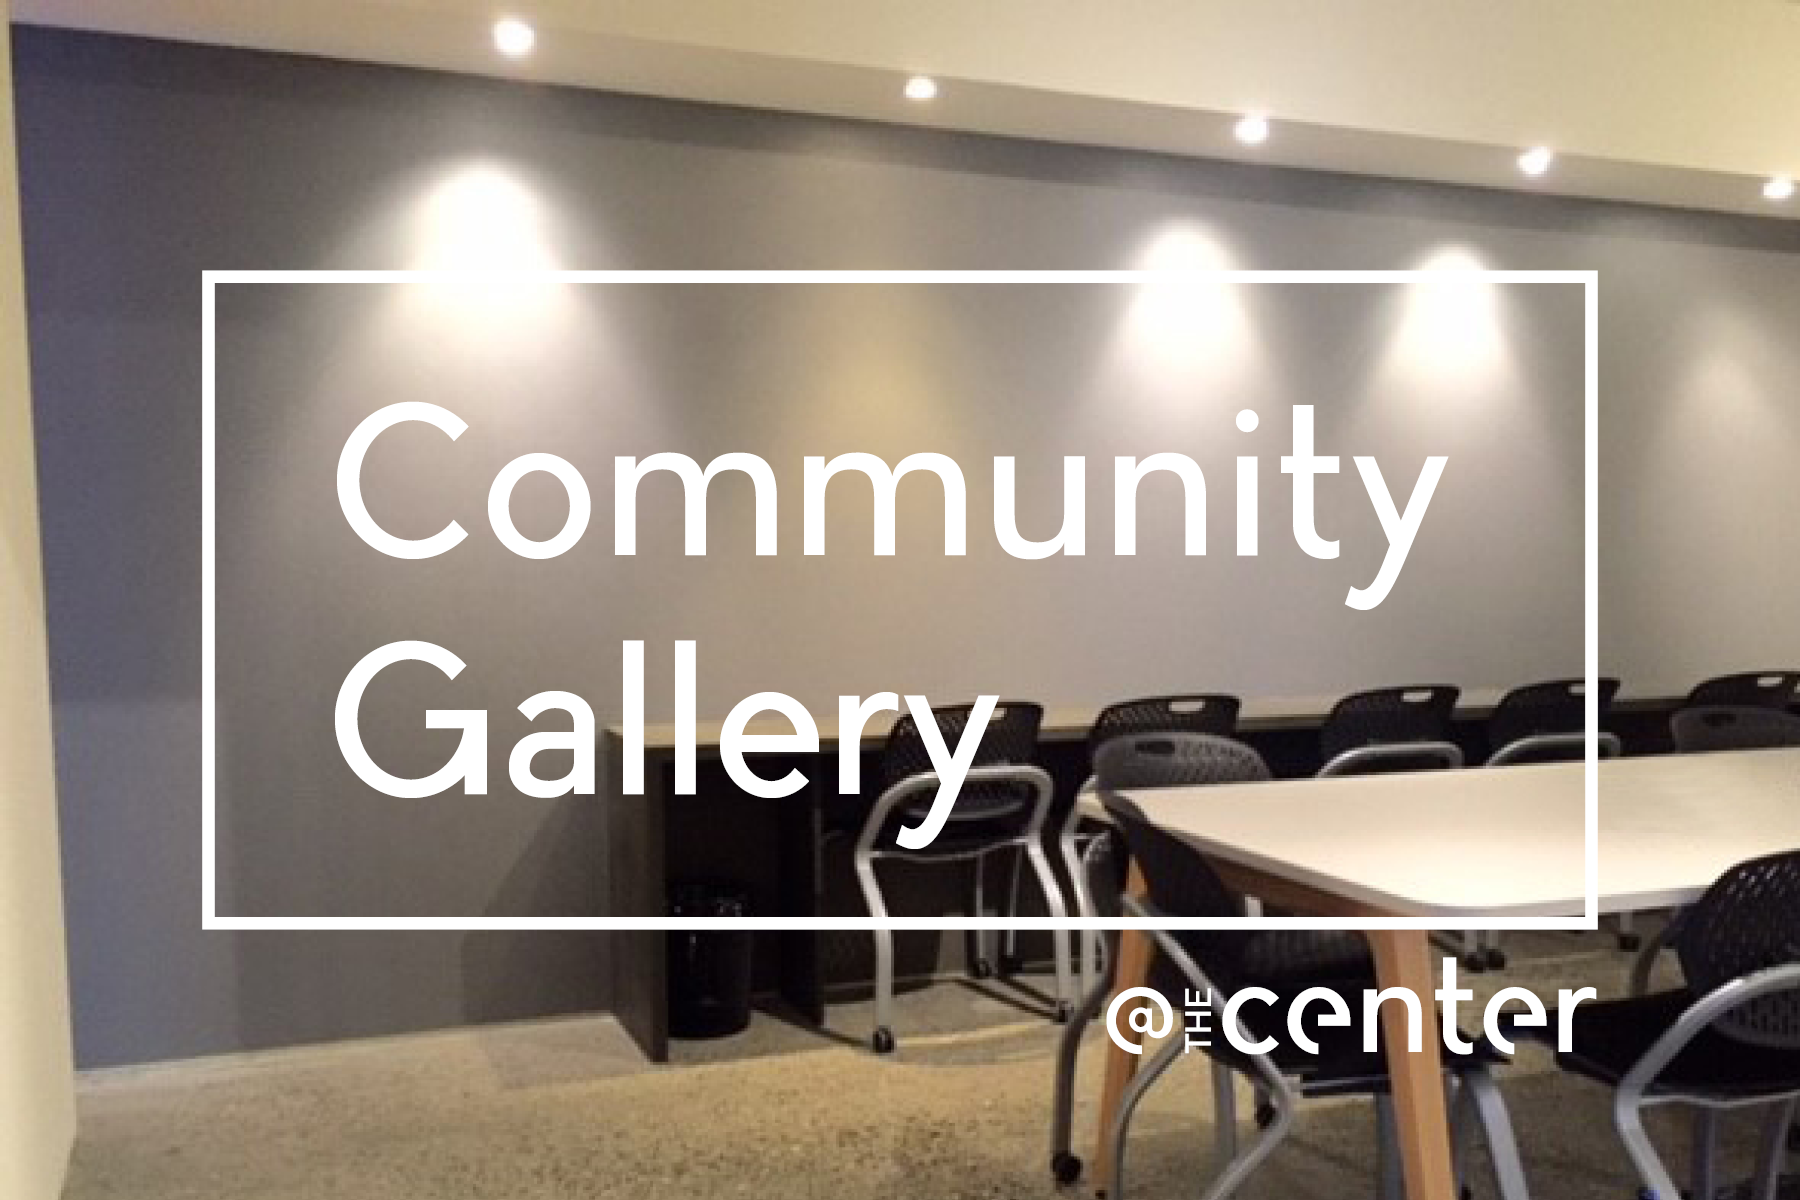 The Center for Architecture & Design has designated the north wall of the CfAD small conference room as a Community Gallery. The CfAD Community Gallery offers an opportunity for members of our Seattle design community to mount short-term small-scale exhibits of interest to the public.